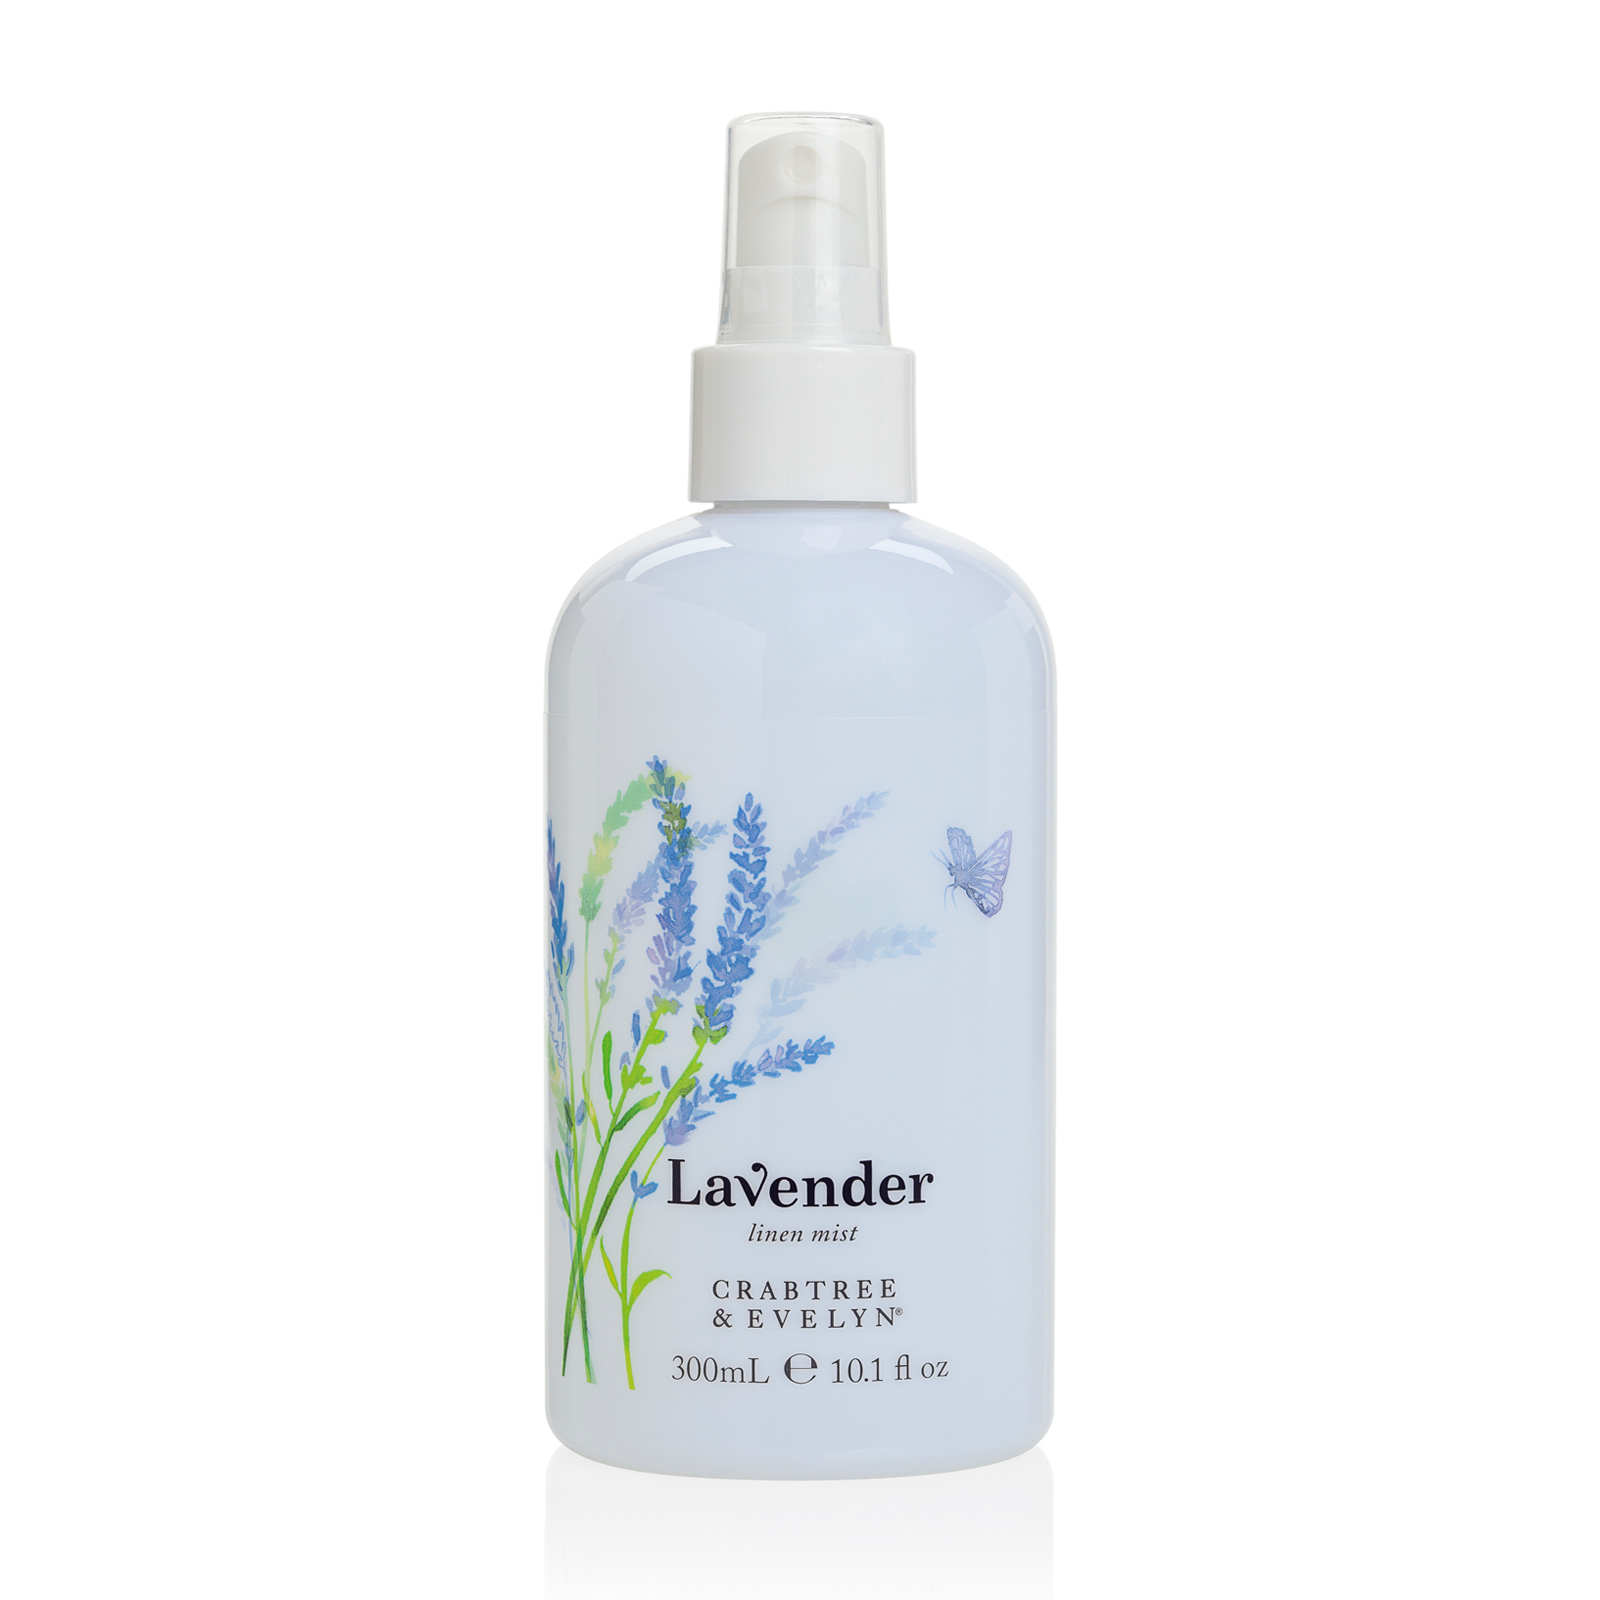 Lavender Linen Mist , $18 from Crabtree & Evelyn